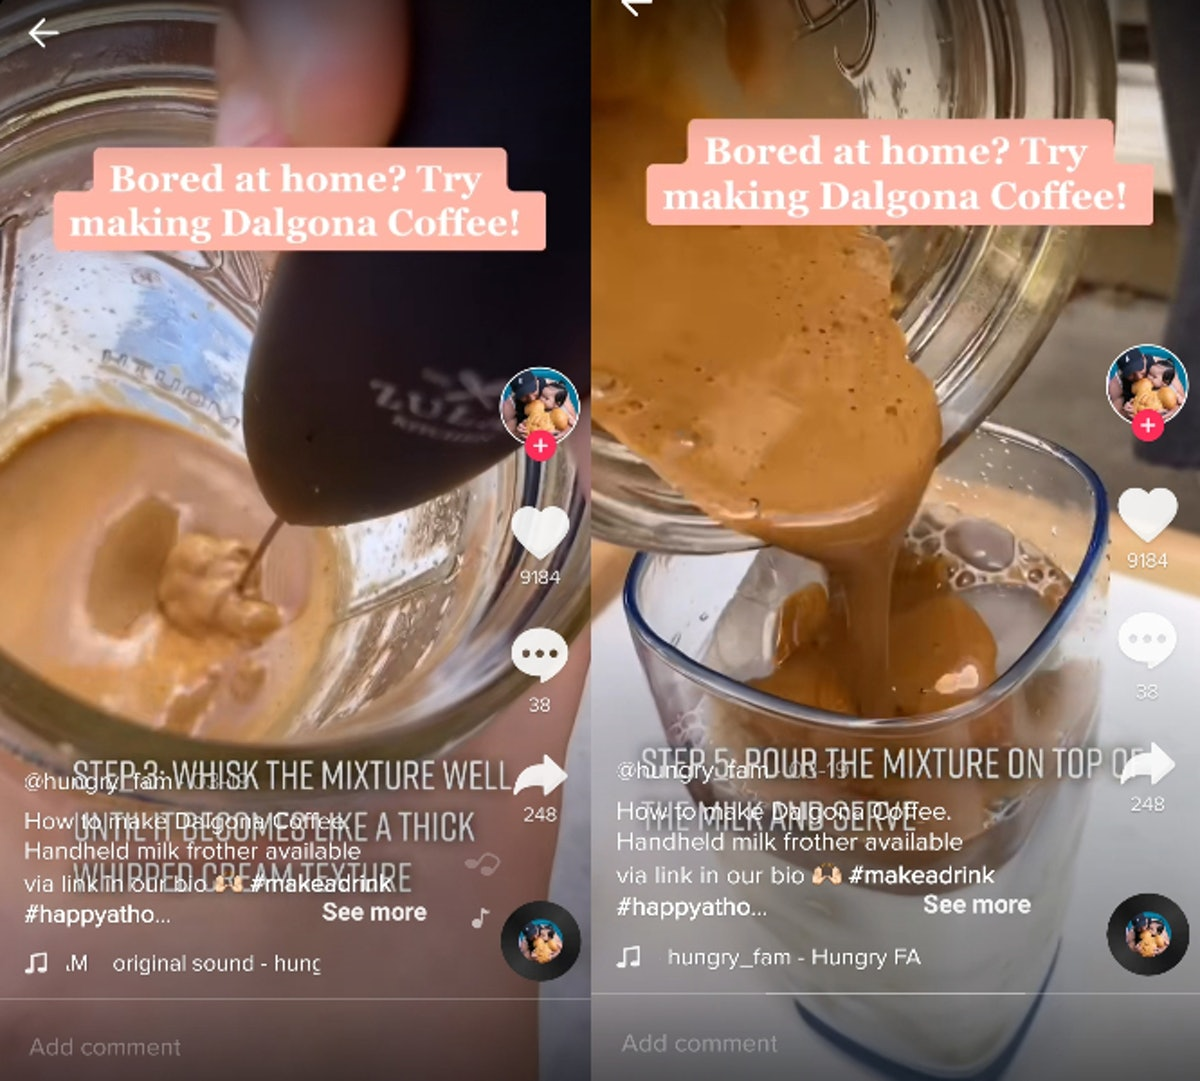 Here's how to make Dalonga coffee without a mixer, so you can try the viral sip.